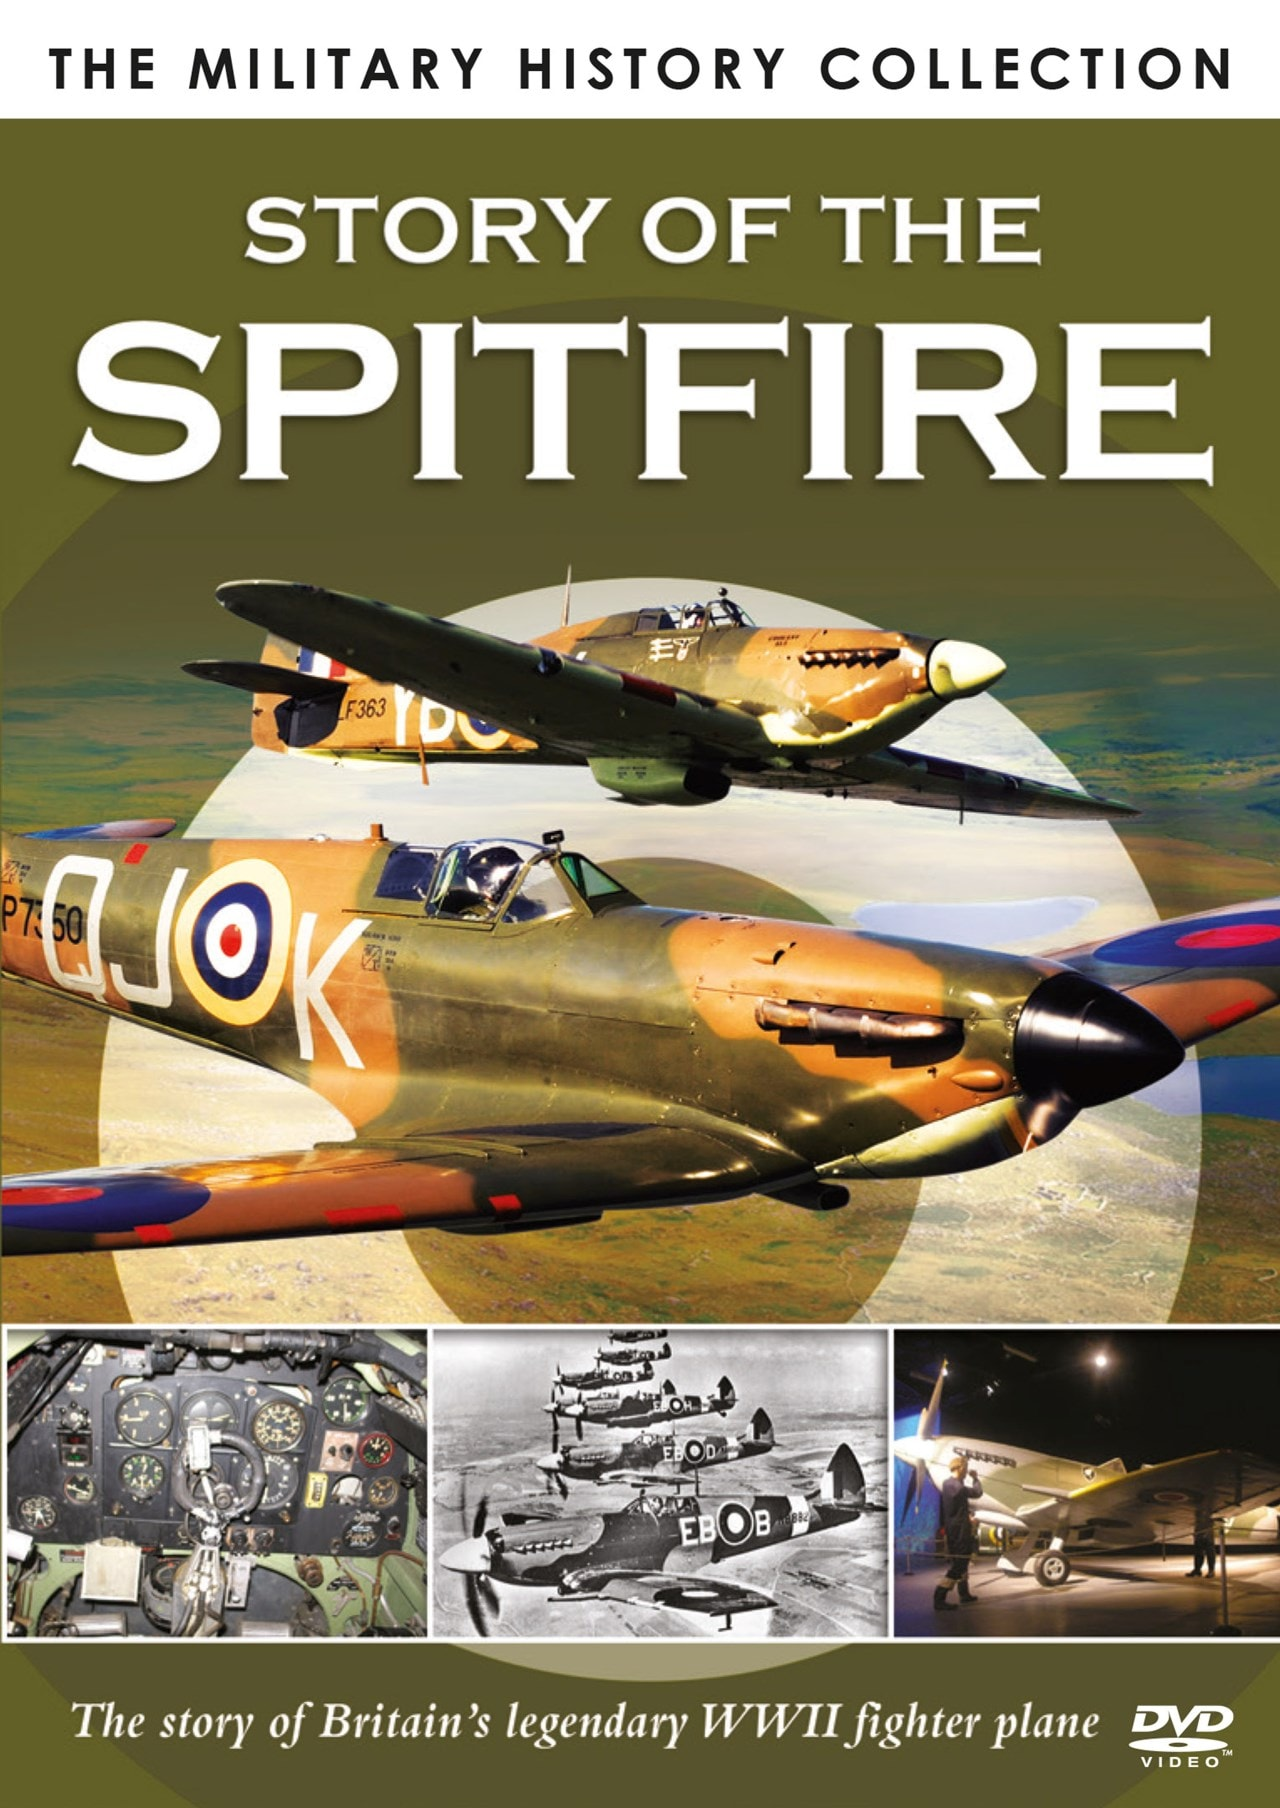 The Military History Collection: The Story of the Spitfire - 1